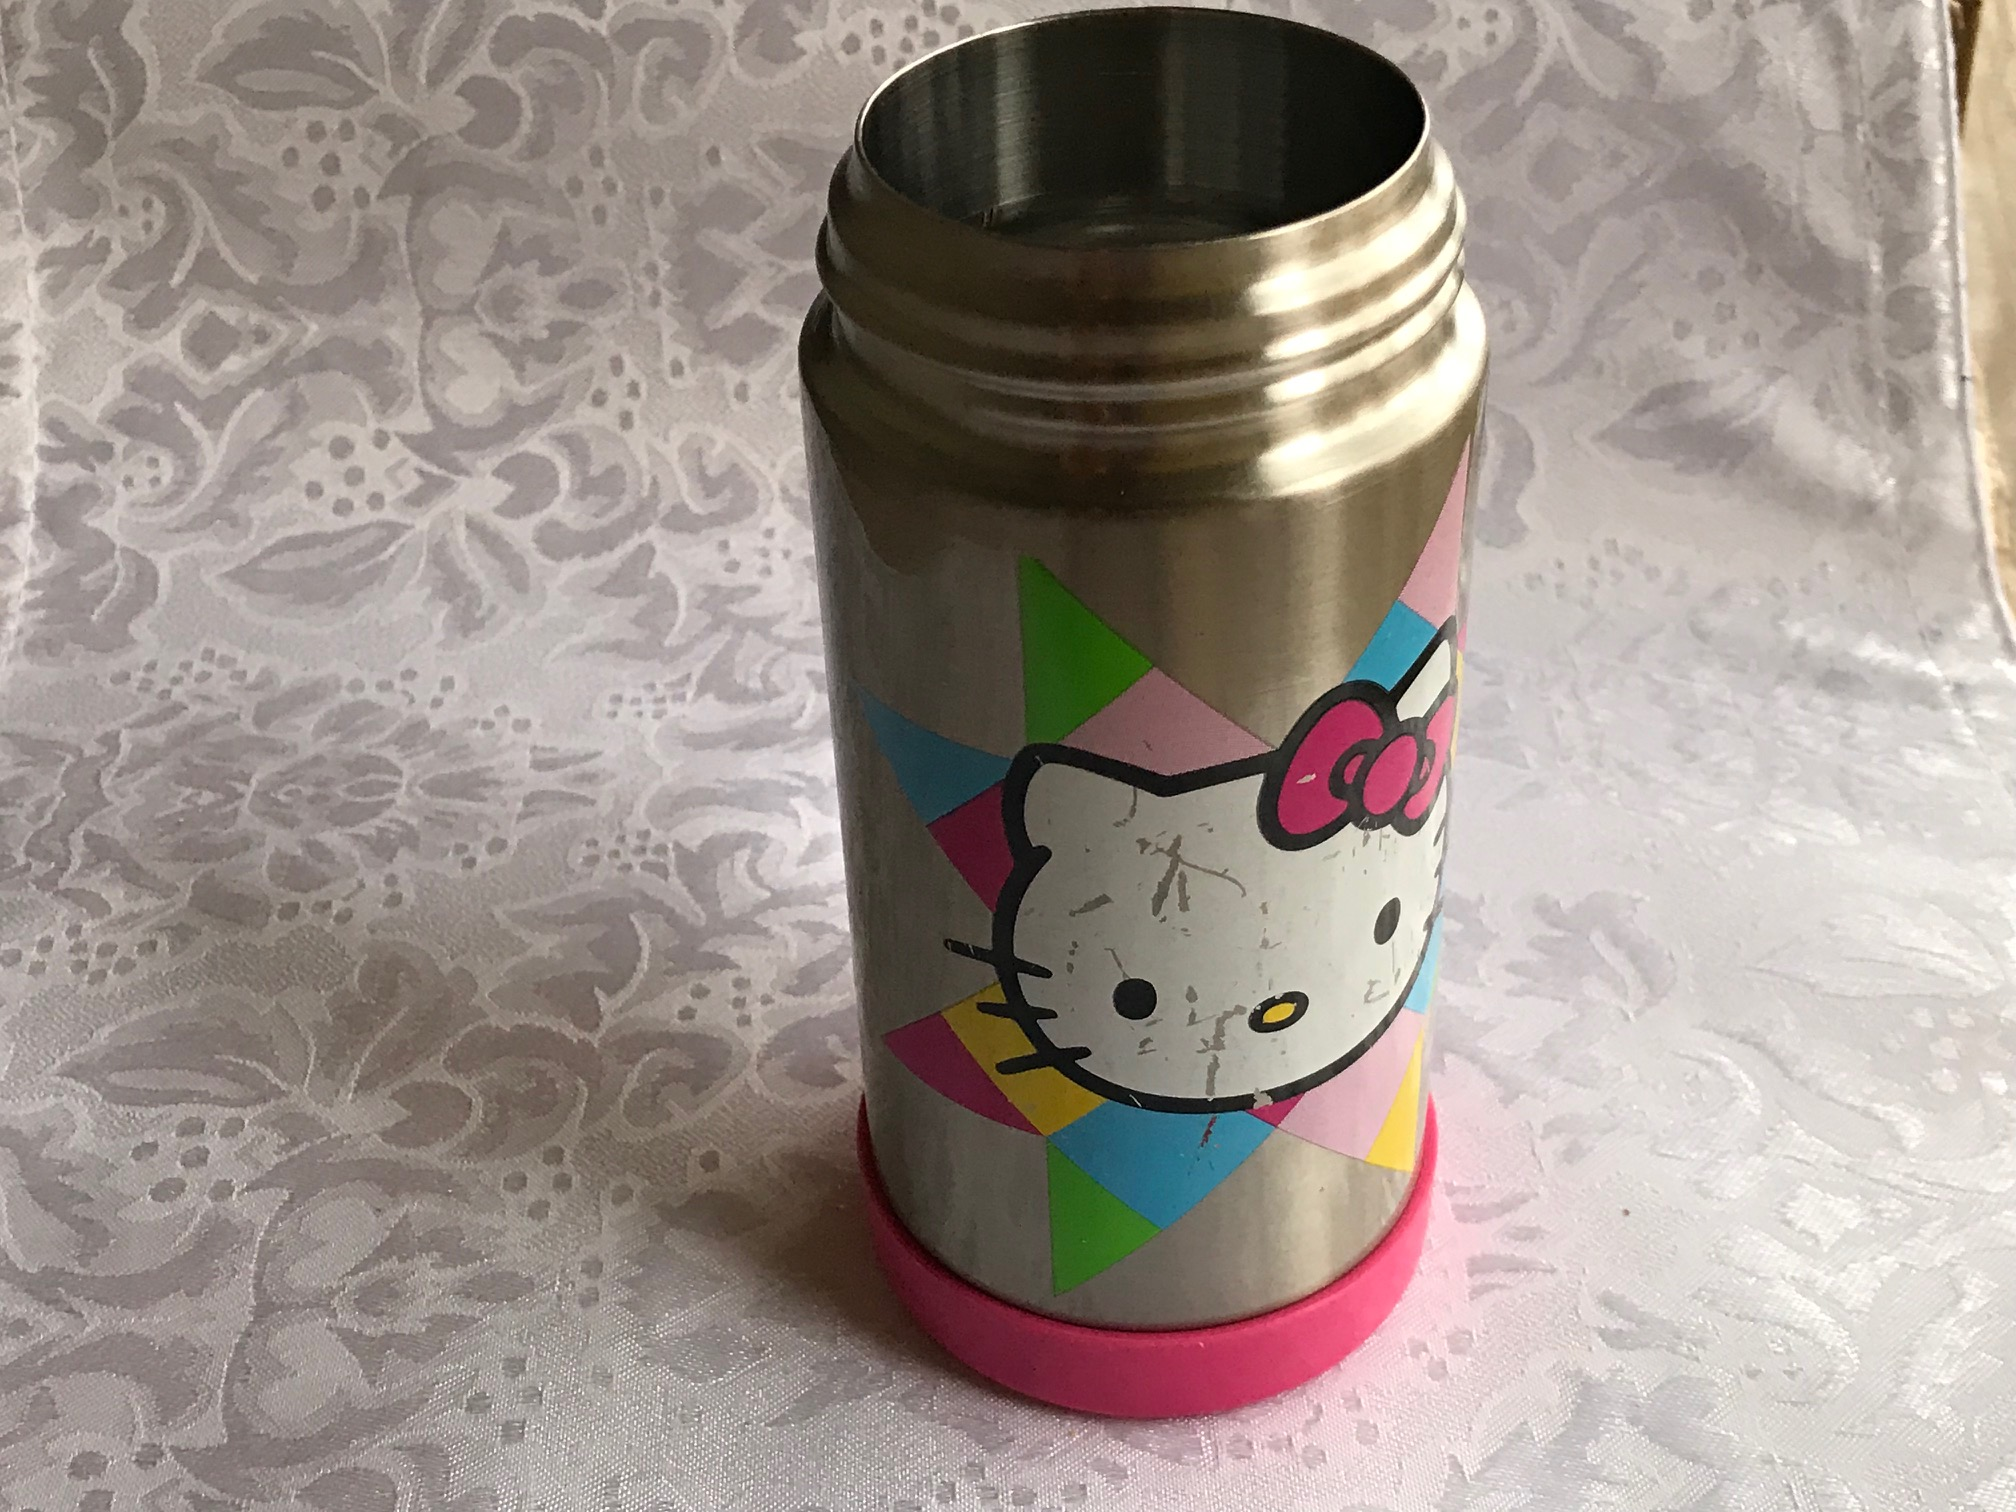 Hello Kitty Thermos Brand Child's Insulated Stainless Steel Water Bottle: Lead-Free in all accessible components.